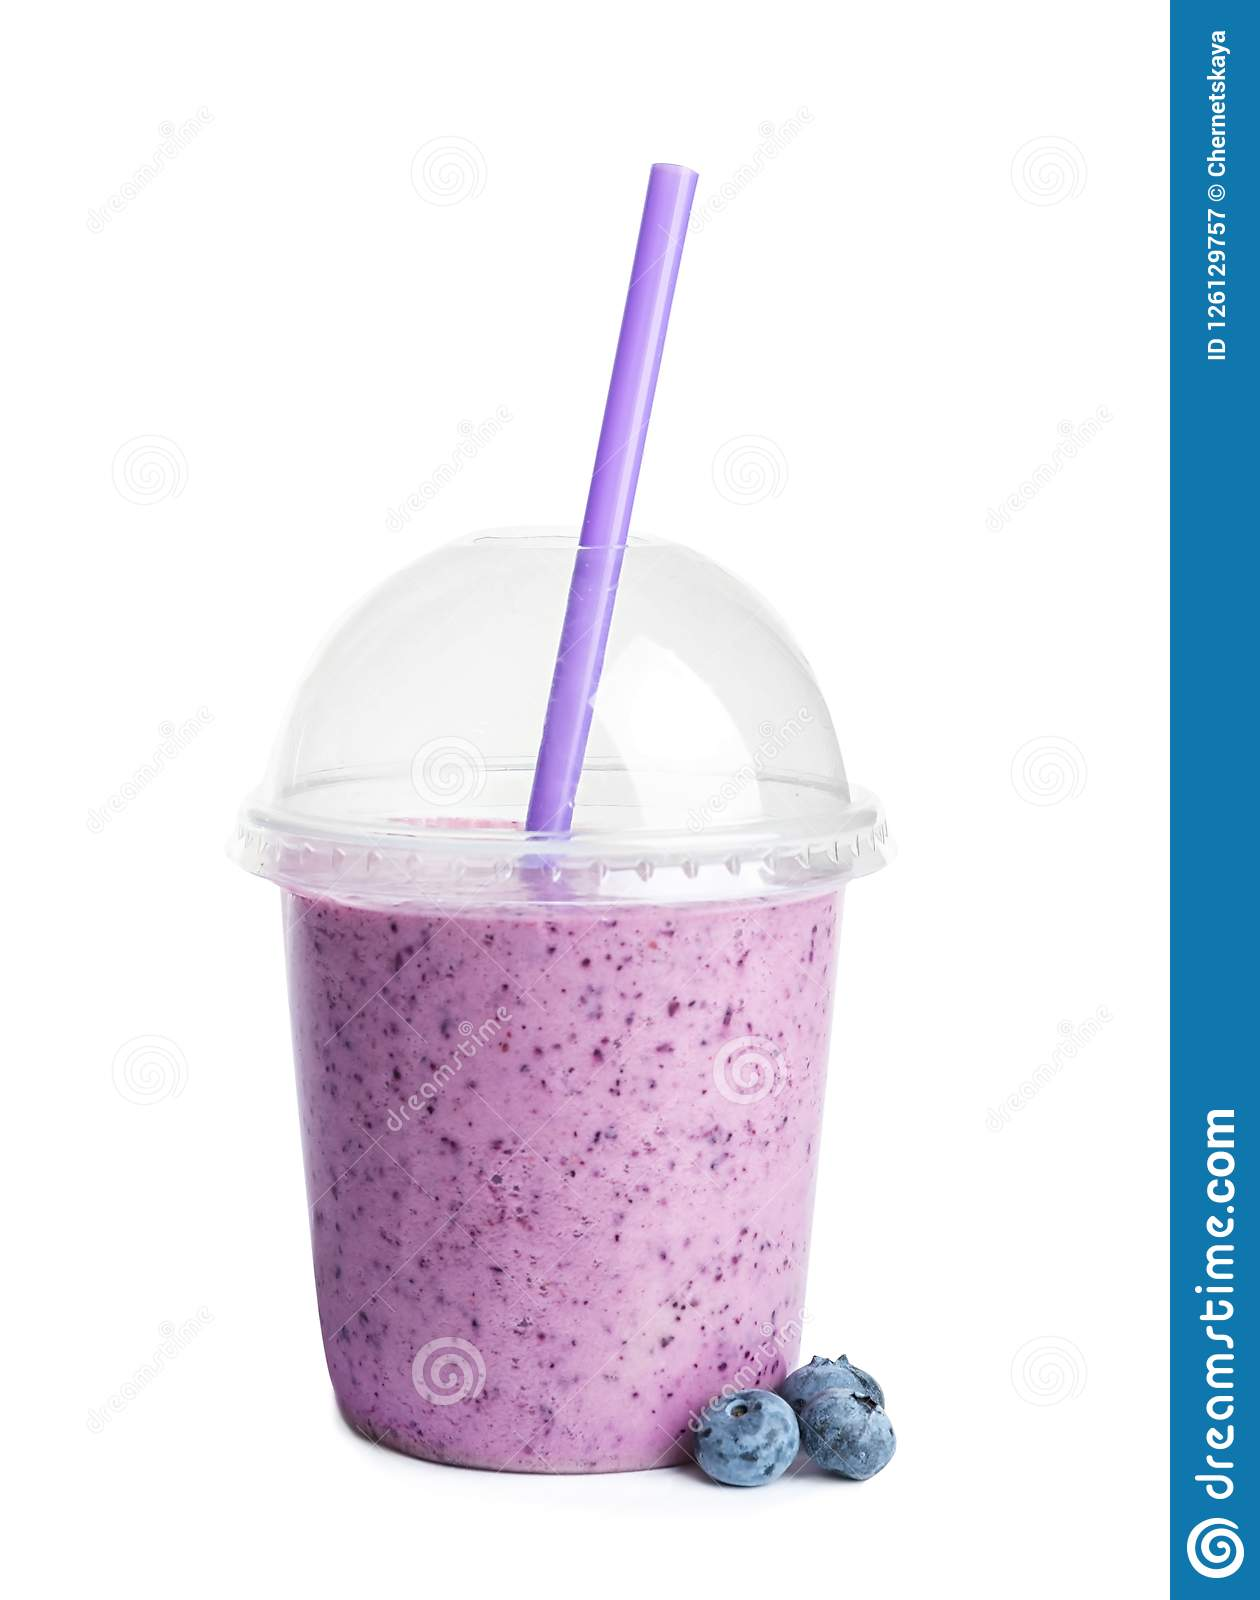 Tasty blueberry smoothie in plastic cup